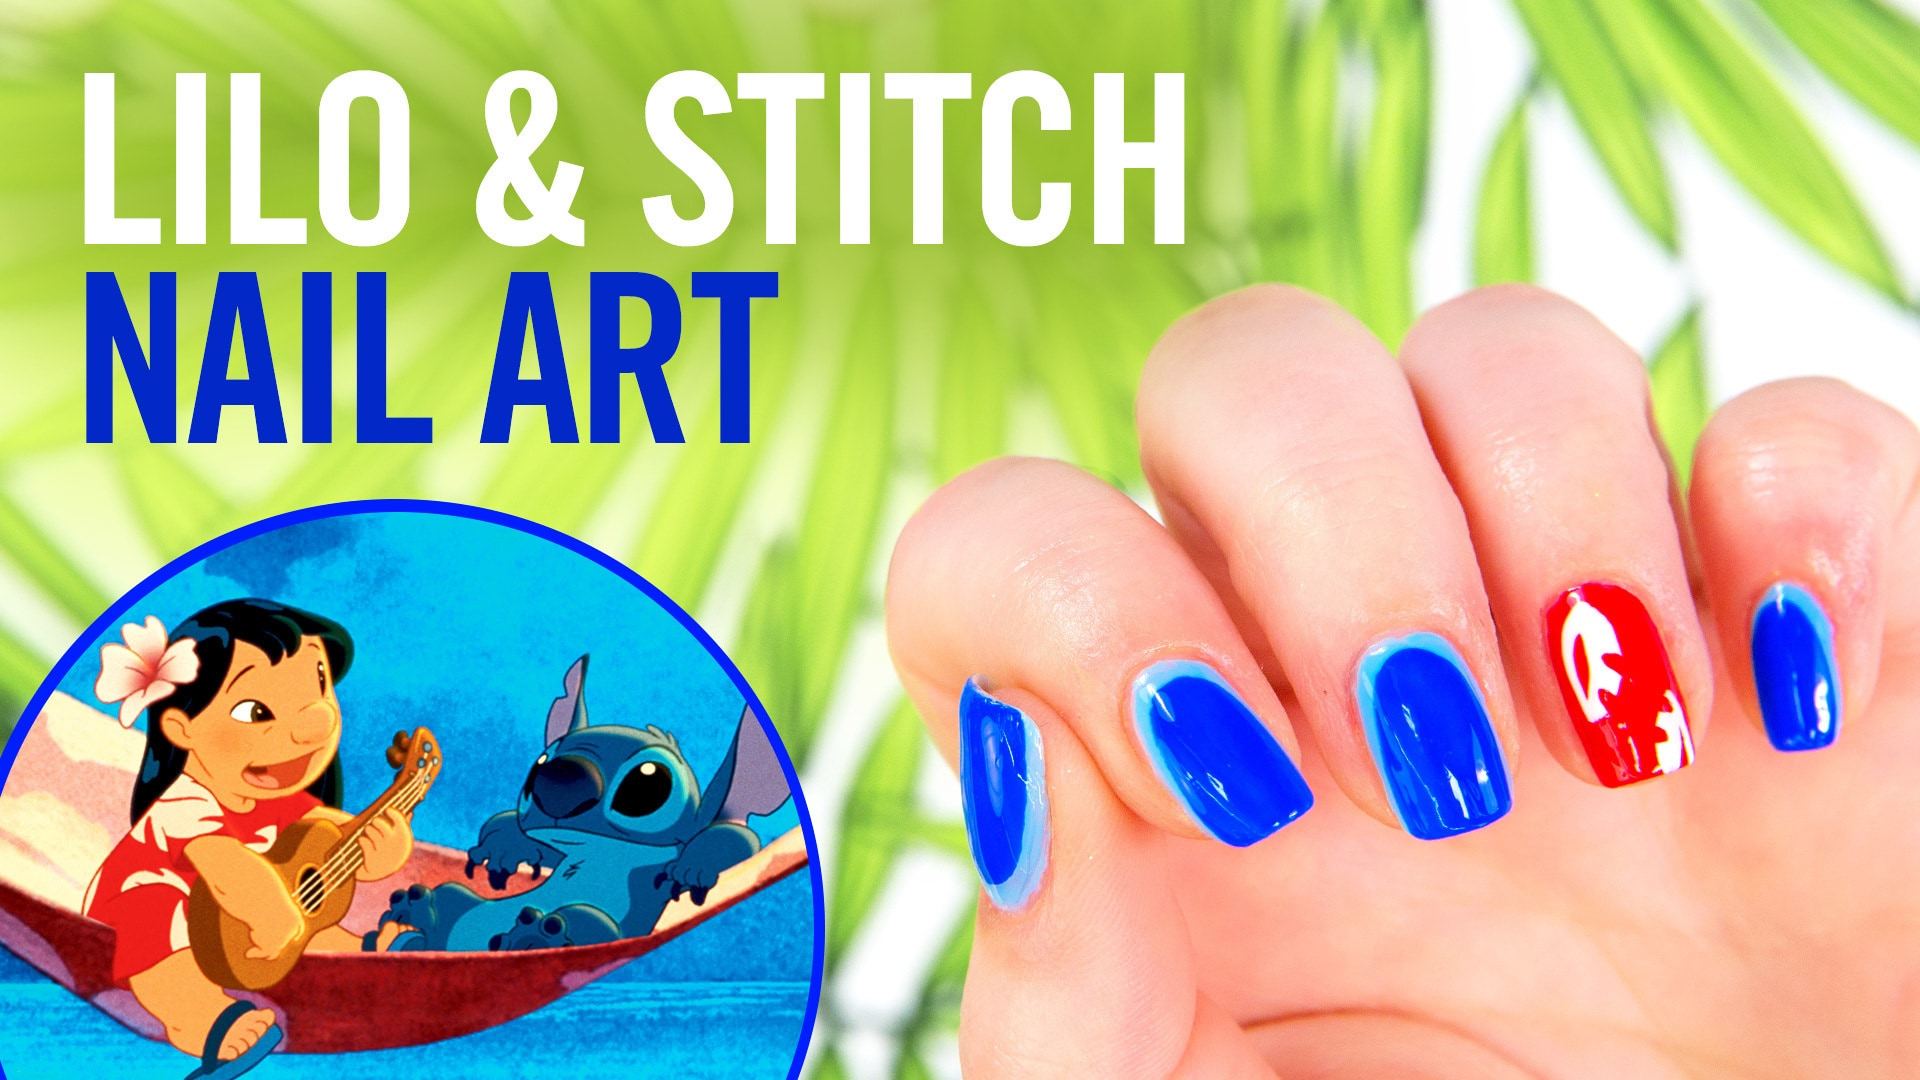 Lilo & Stitch Nail Art